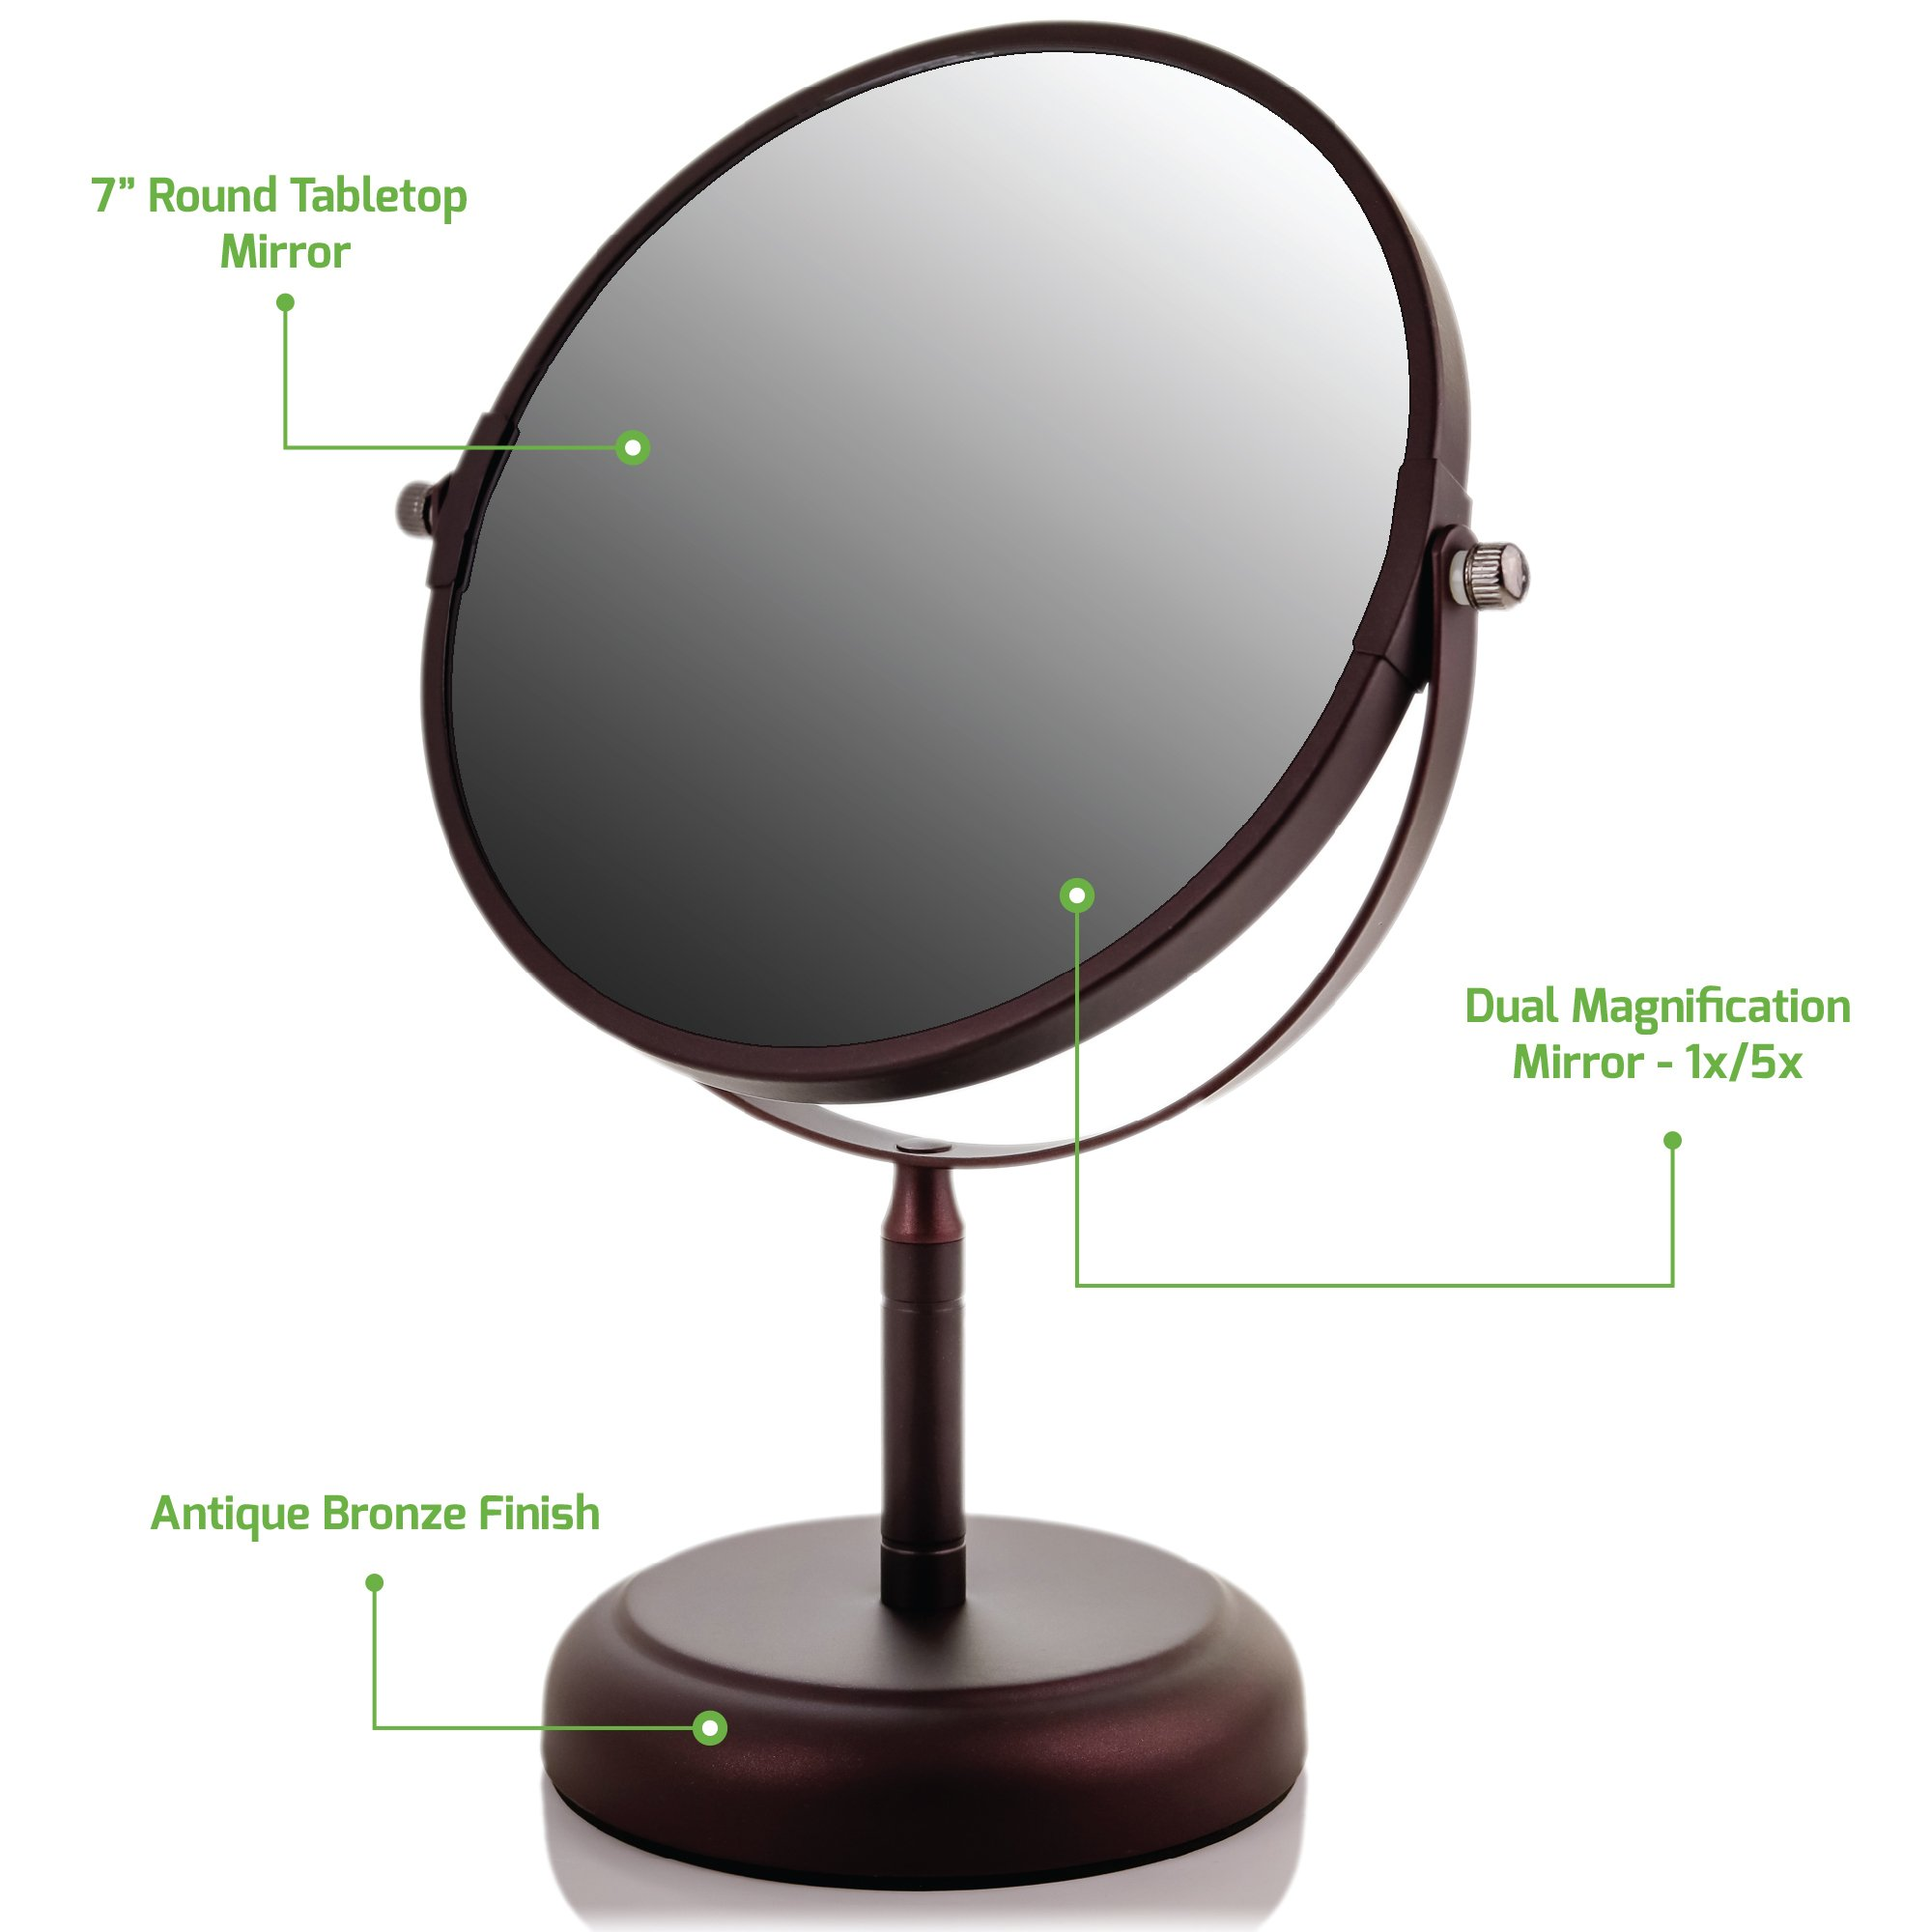 Ovente Round Tabletop Vanity Mirror, 7 Inch, Dual-Sided with 1x/5x magnification, Antique Bronze (MNLDT70ABZ1X5X)